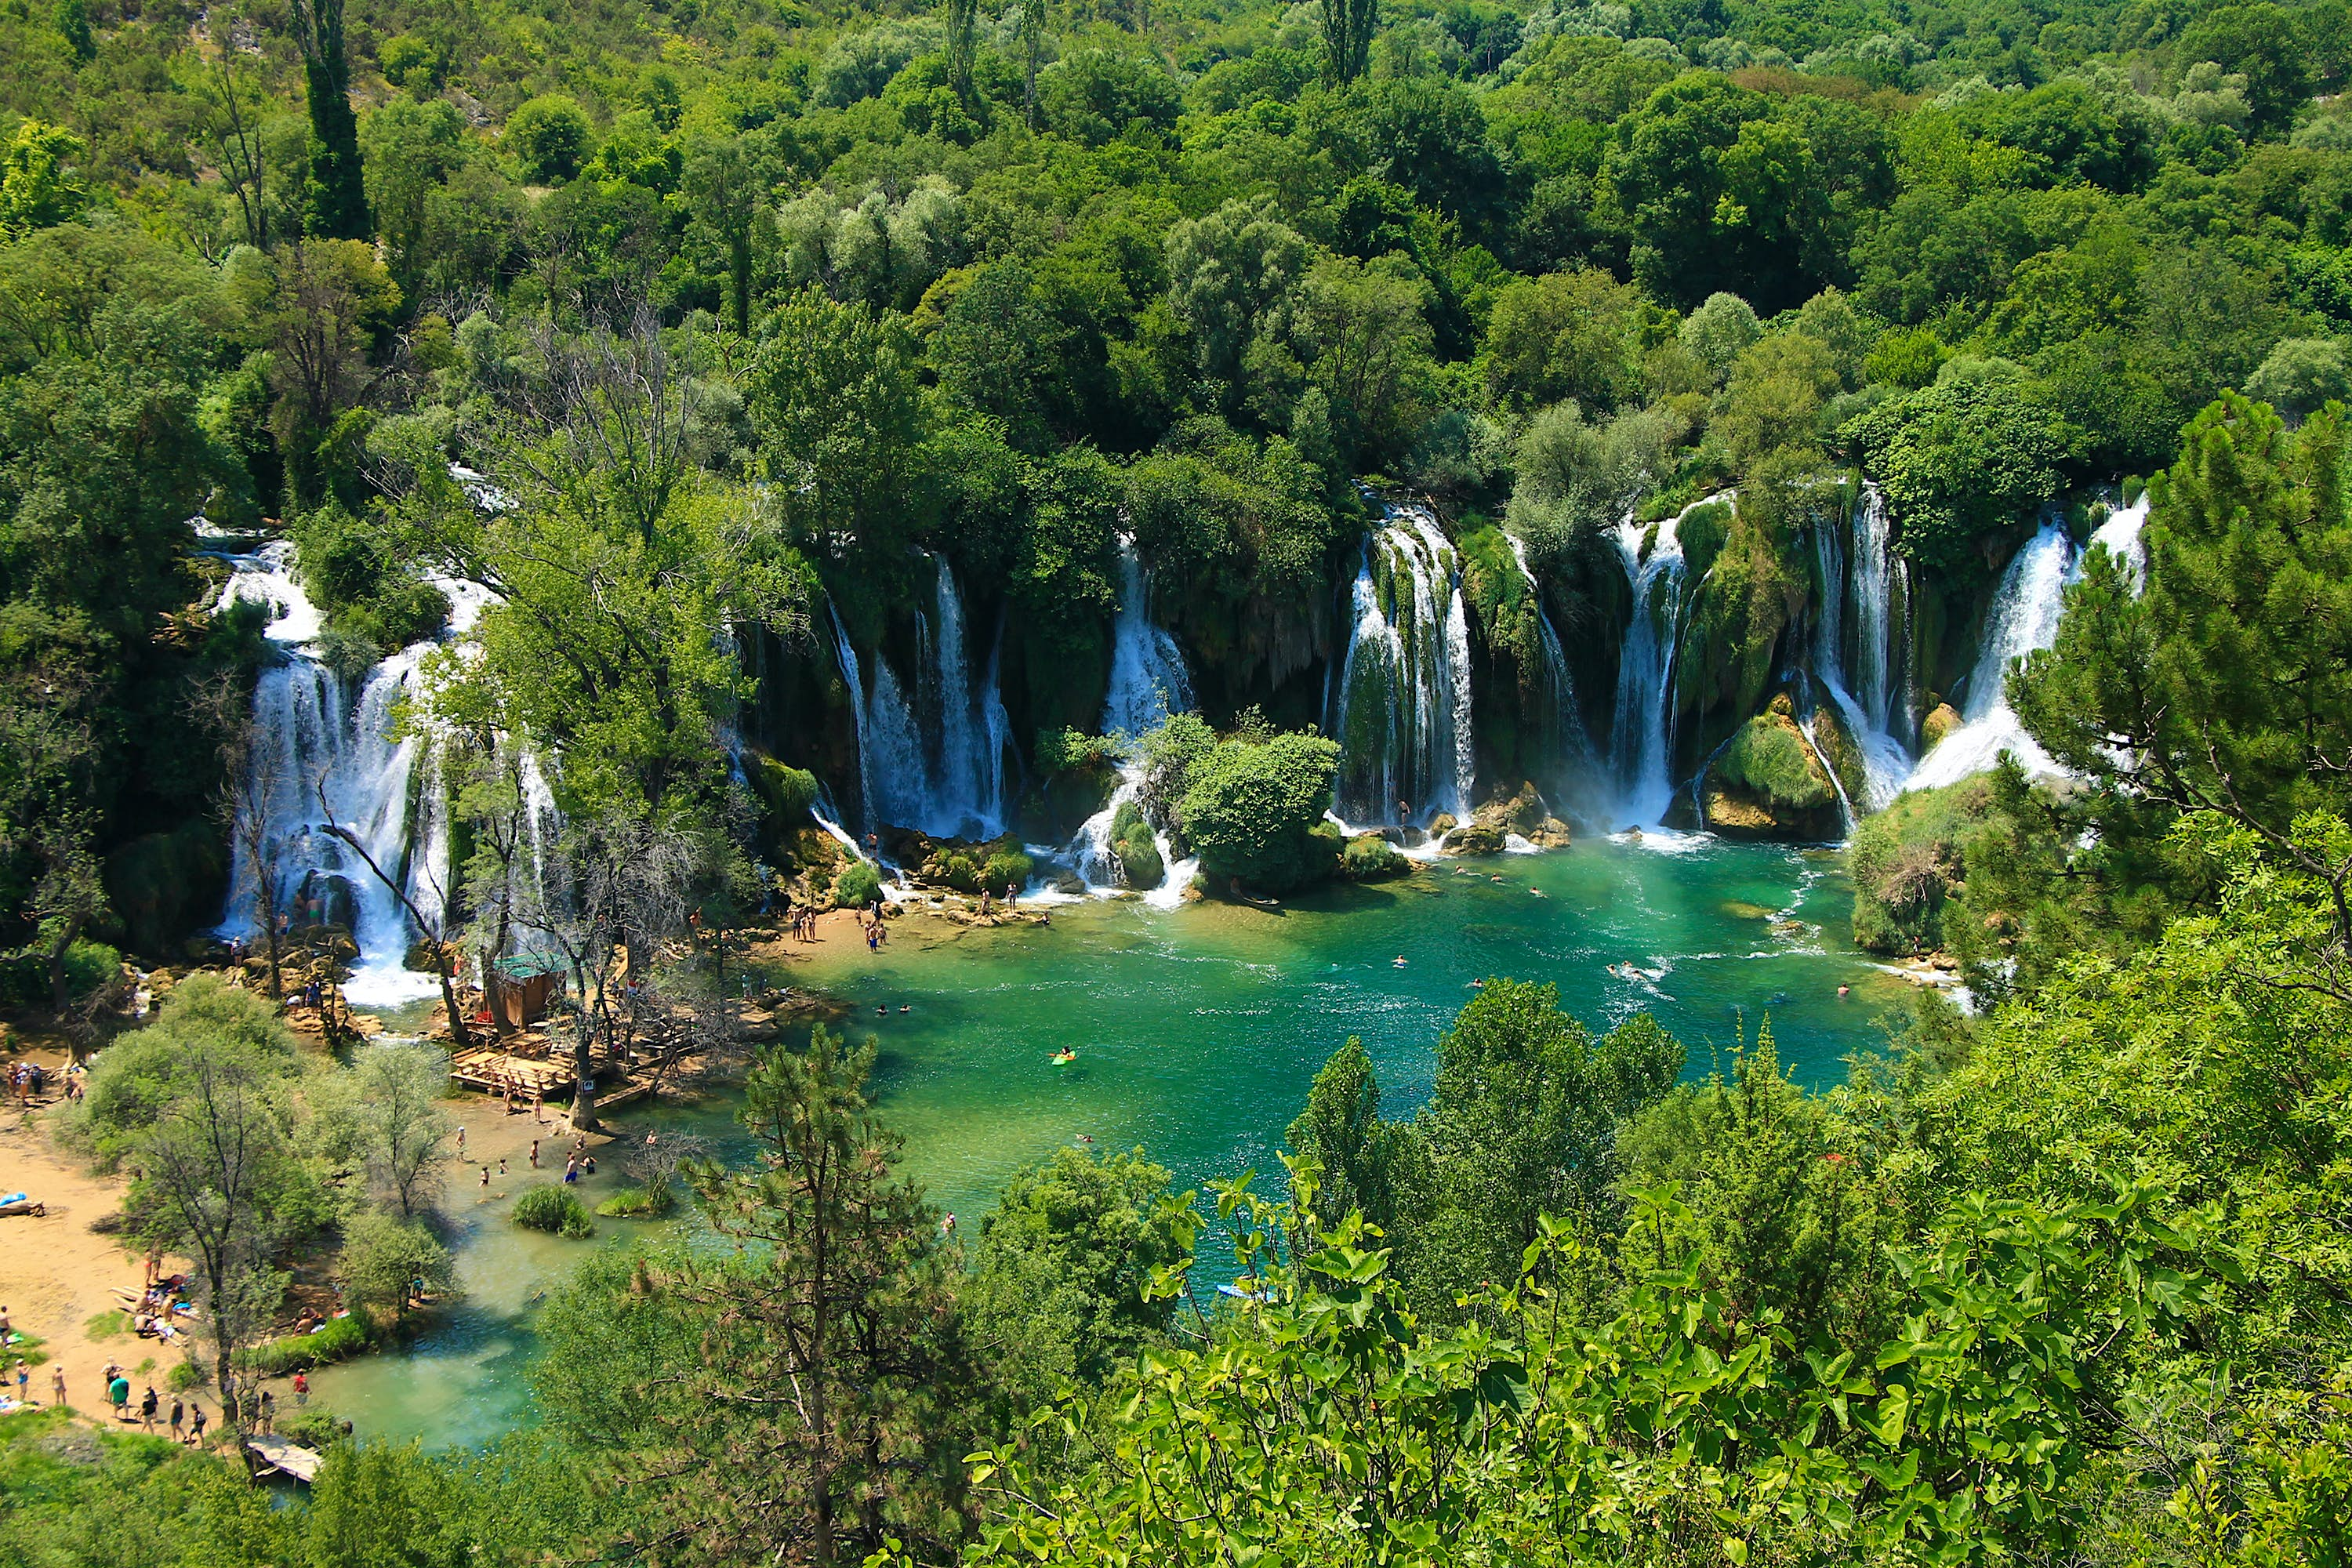 A series of waterfalls flow out of dense forest into a green-blue pool. A few people can be seen on the beach to the left.